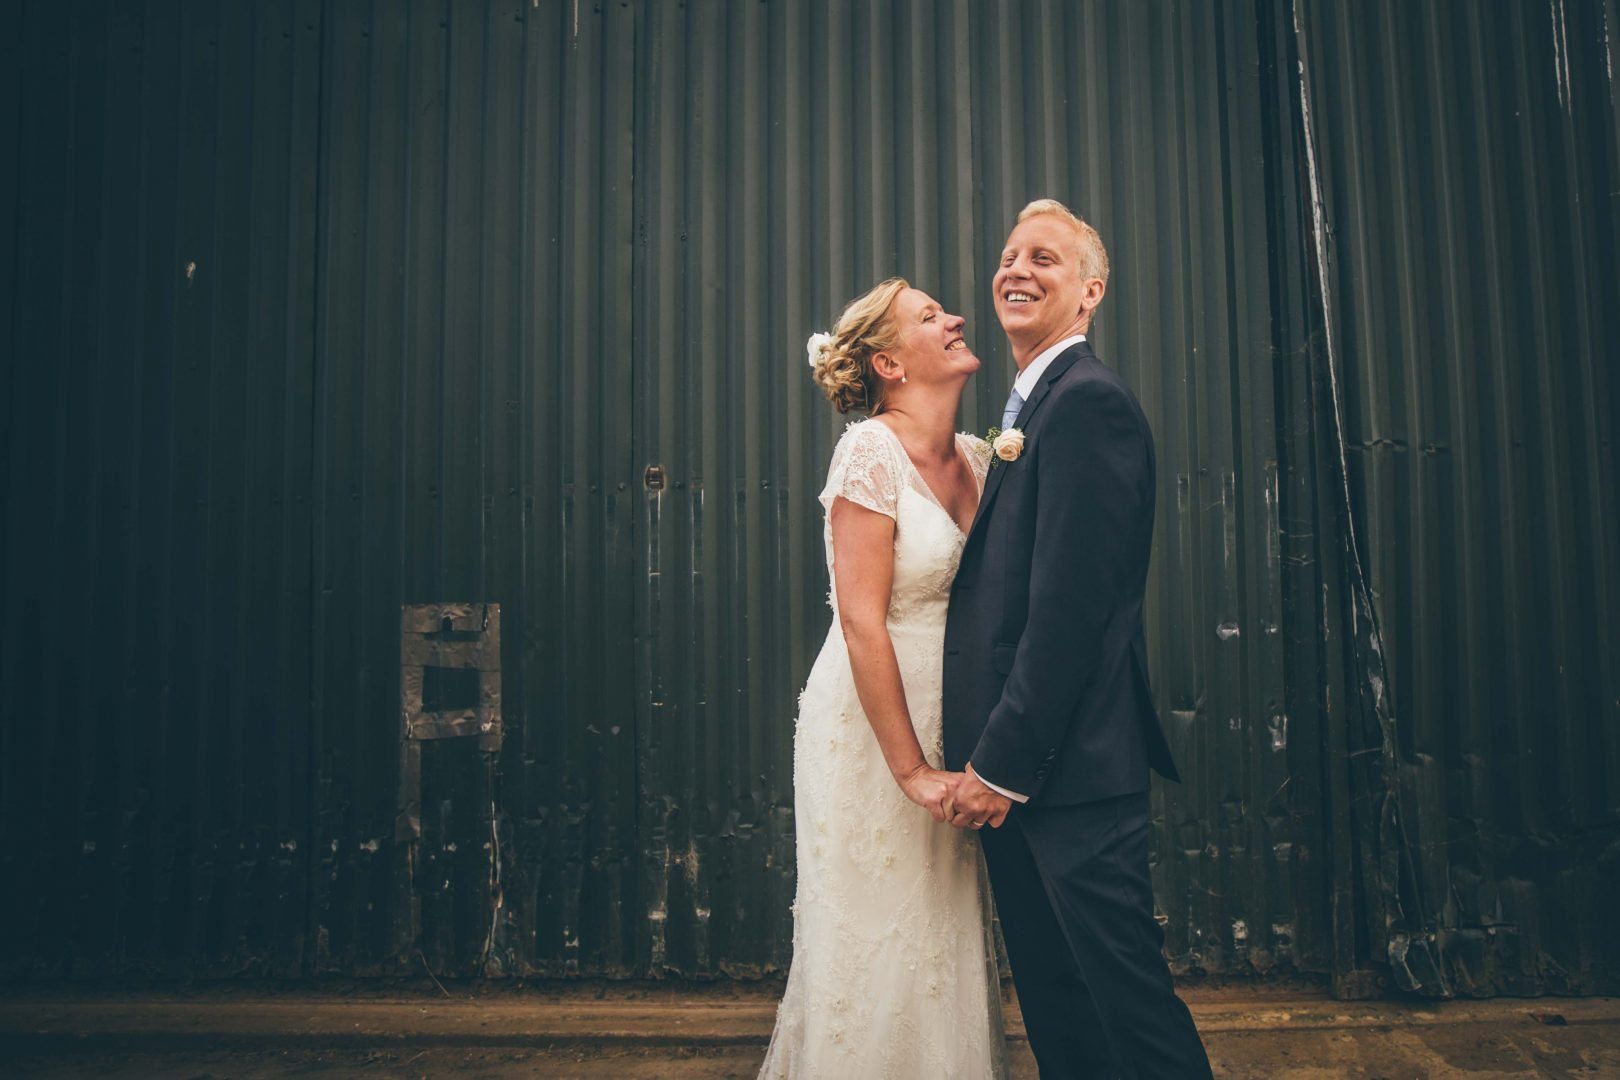 SARAH_GRAY_PHOTOGRAPHY_GLOUCESTER_CHELTENHAM_WEDDING_PHOTOGRAPHER_40_2